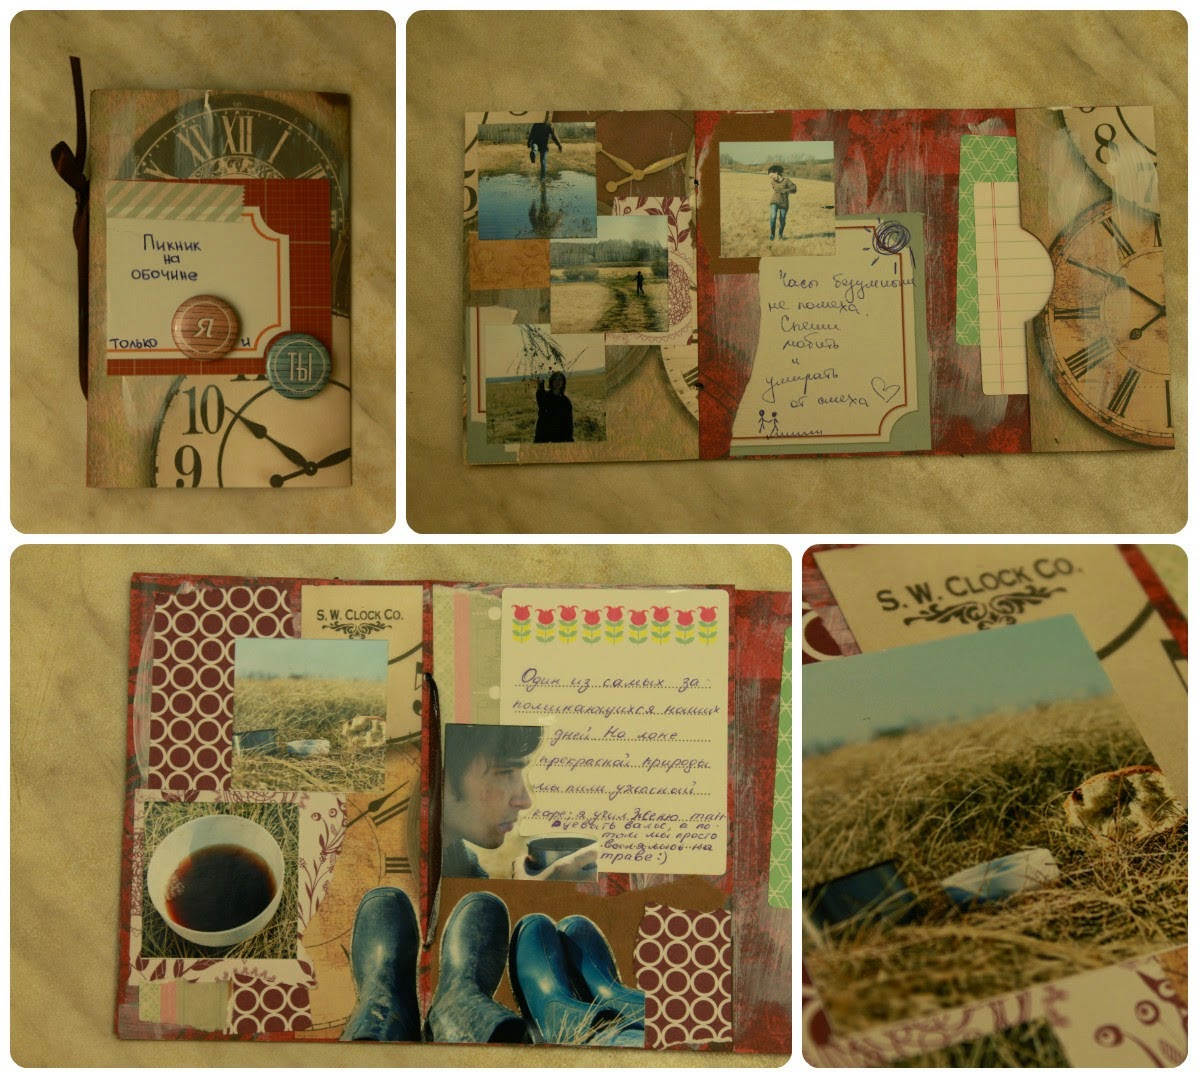 http://scrapclubekb.blogspot.ru/2015/01/blog-post_15.html